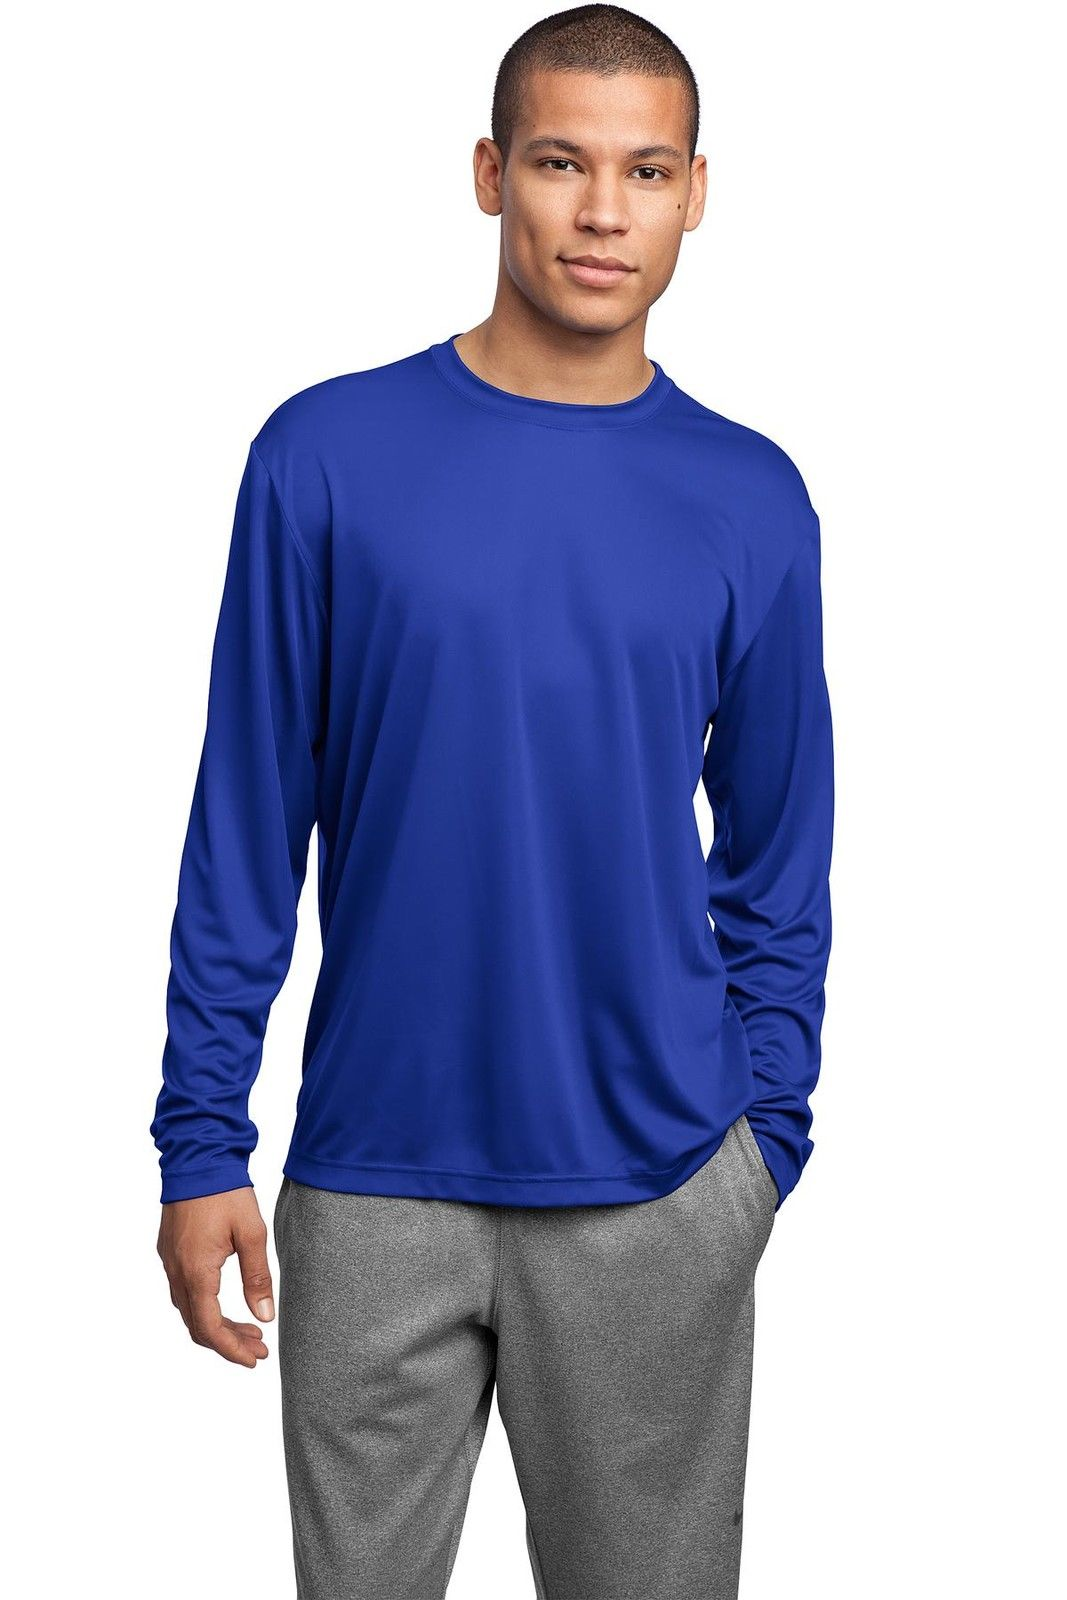 MEN'S MOISTURE WICKING DRY FIT SPORT-TEK Long Sleeve T ...